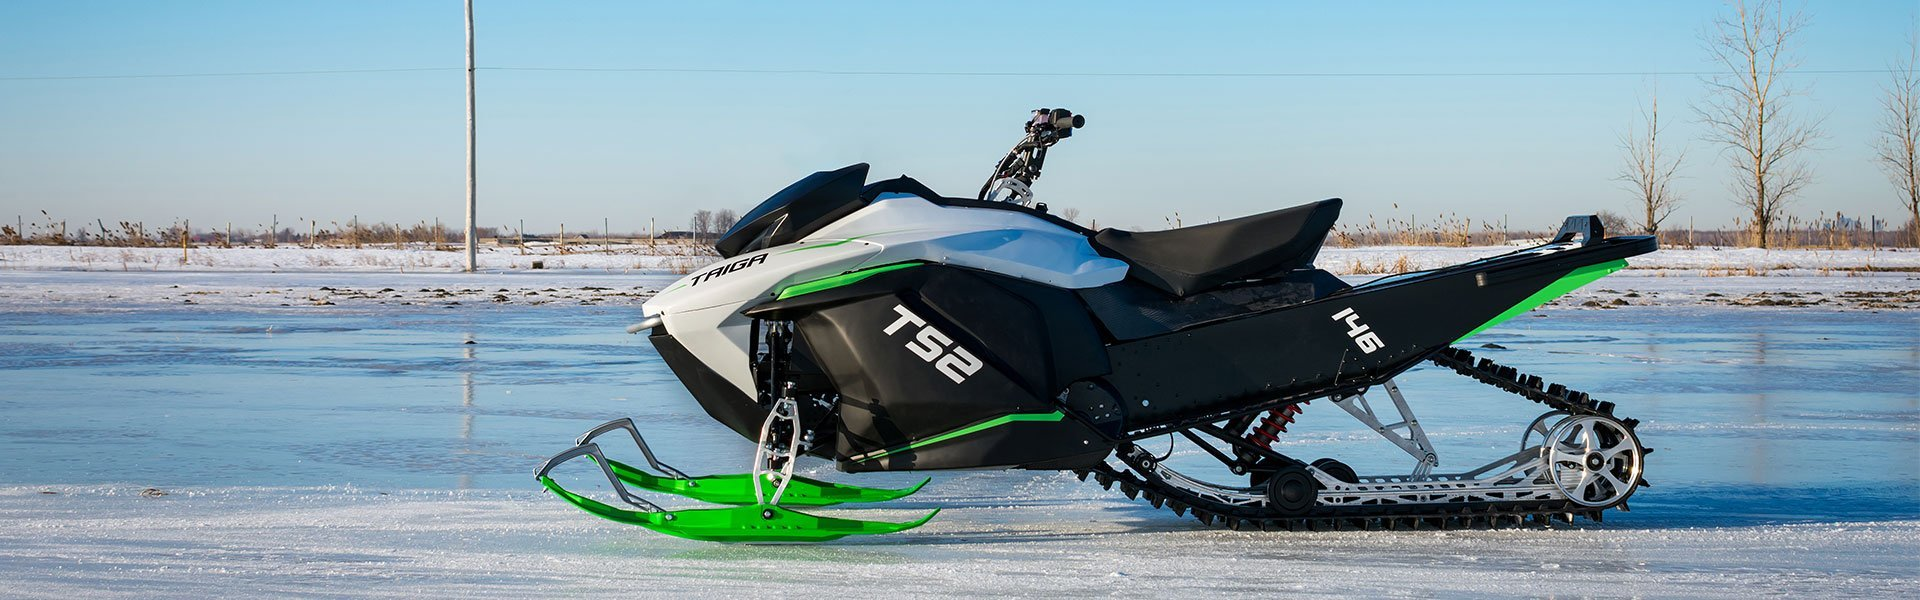 Electric Snowmobile with Impressive Specs just Launched By Taiga Motors